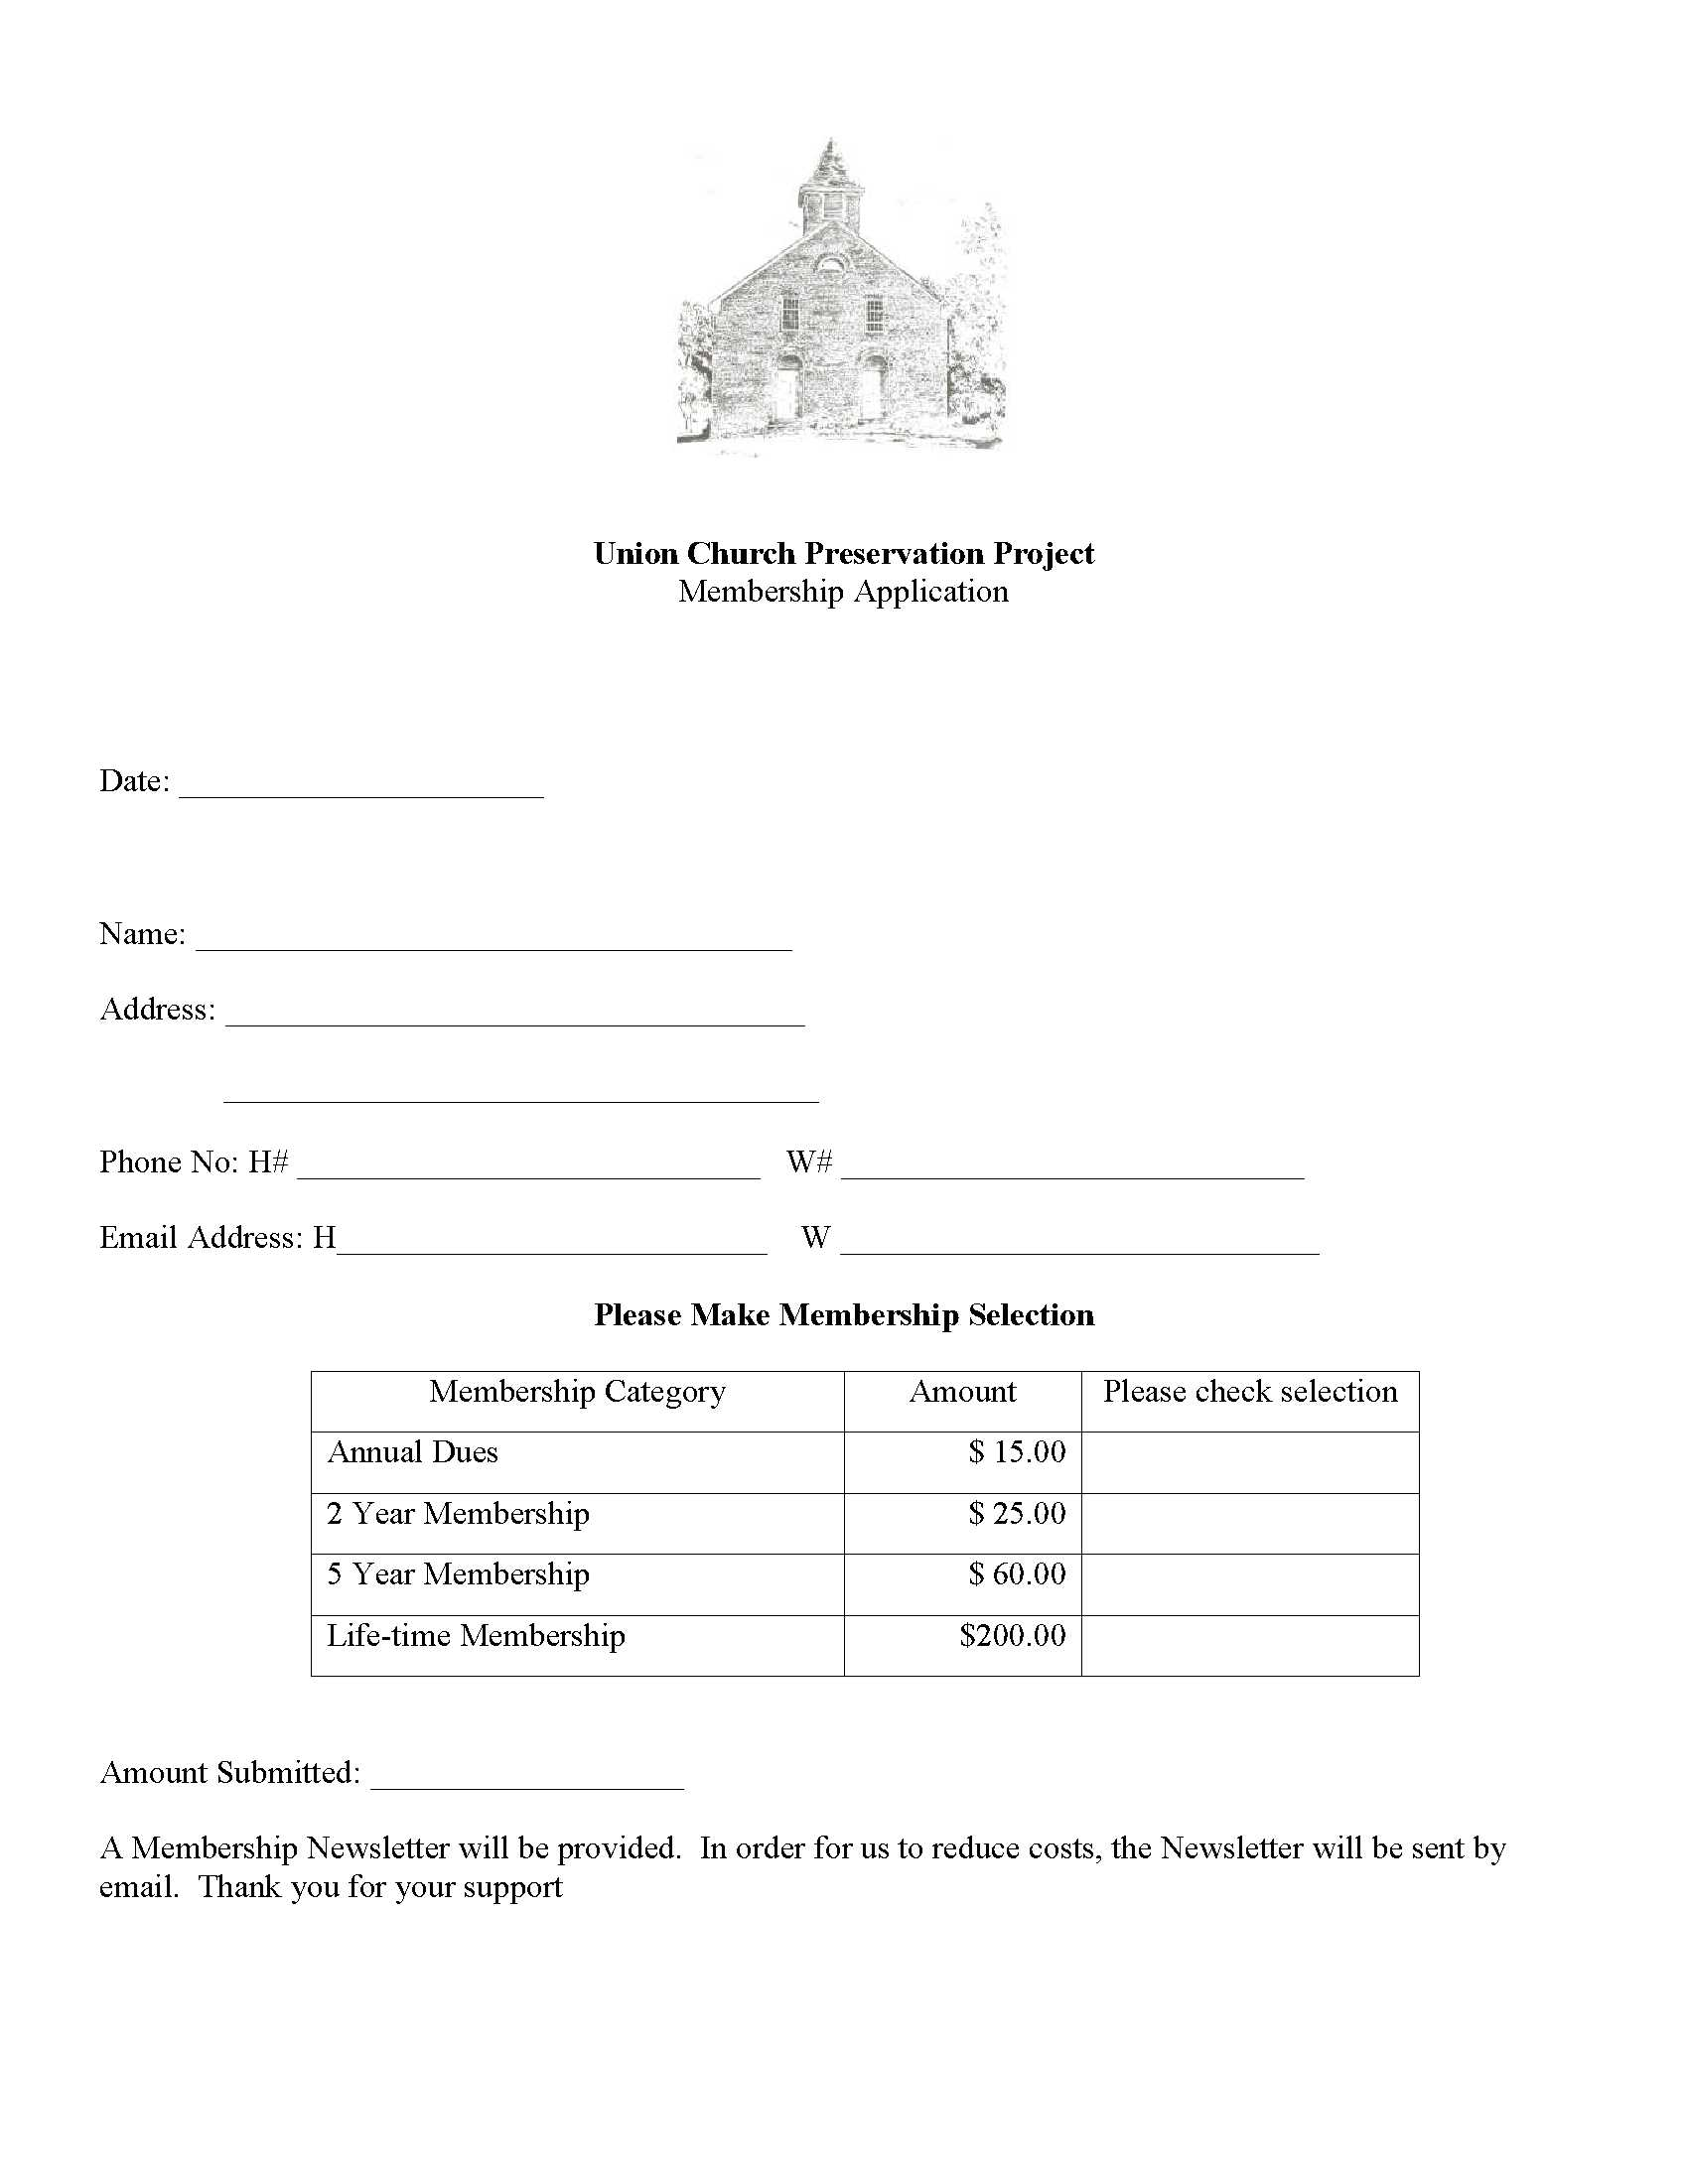 Union church preservation project become a member of ucpp click on image above for a pdf version of the application thecheapjerseys Image collections